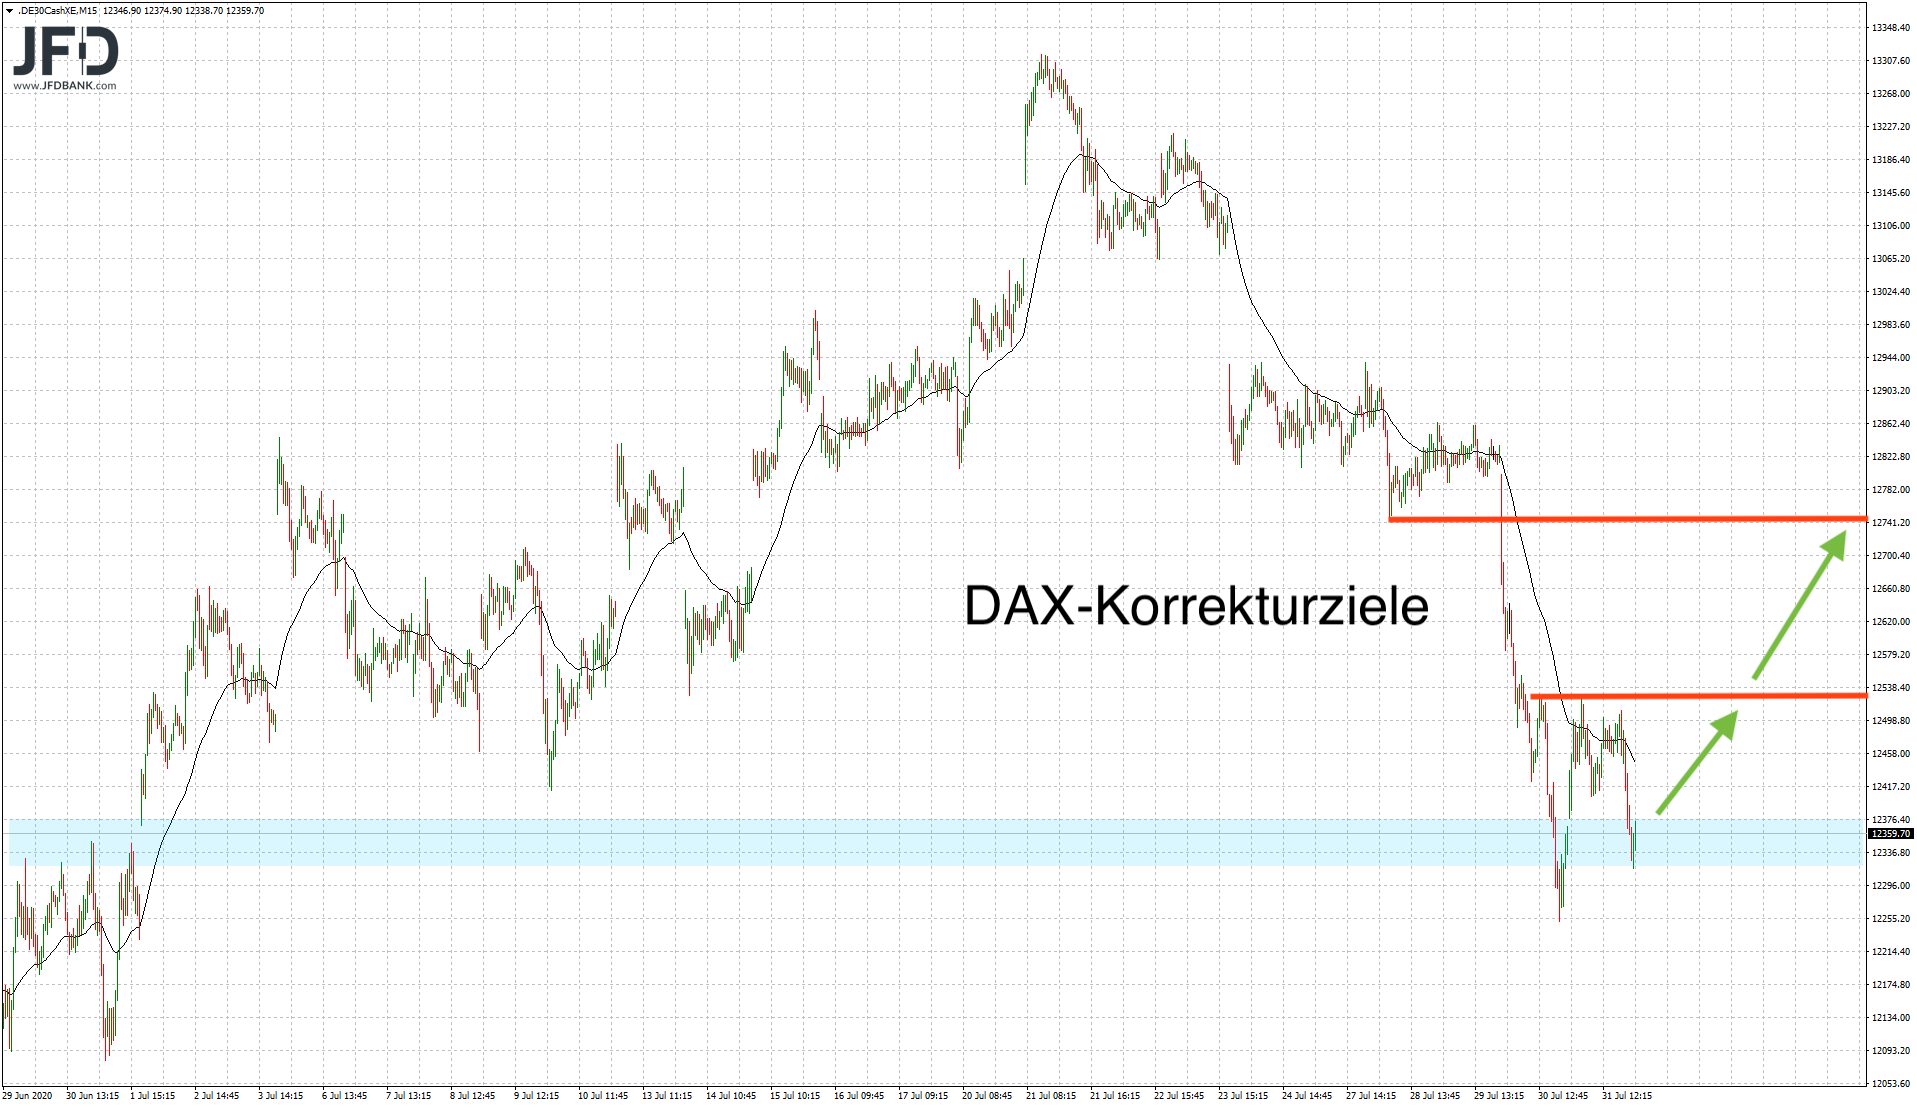 DAX-Start-in-den-August-gelungen-Kommentar-JFD-Bank-GodmodeTrader.de-1